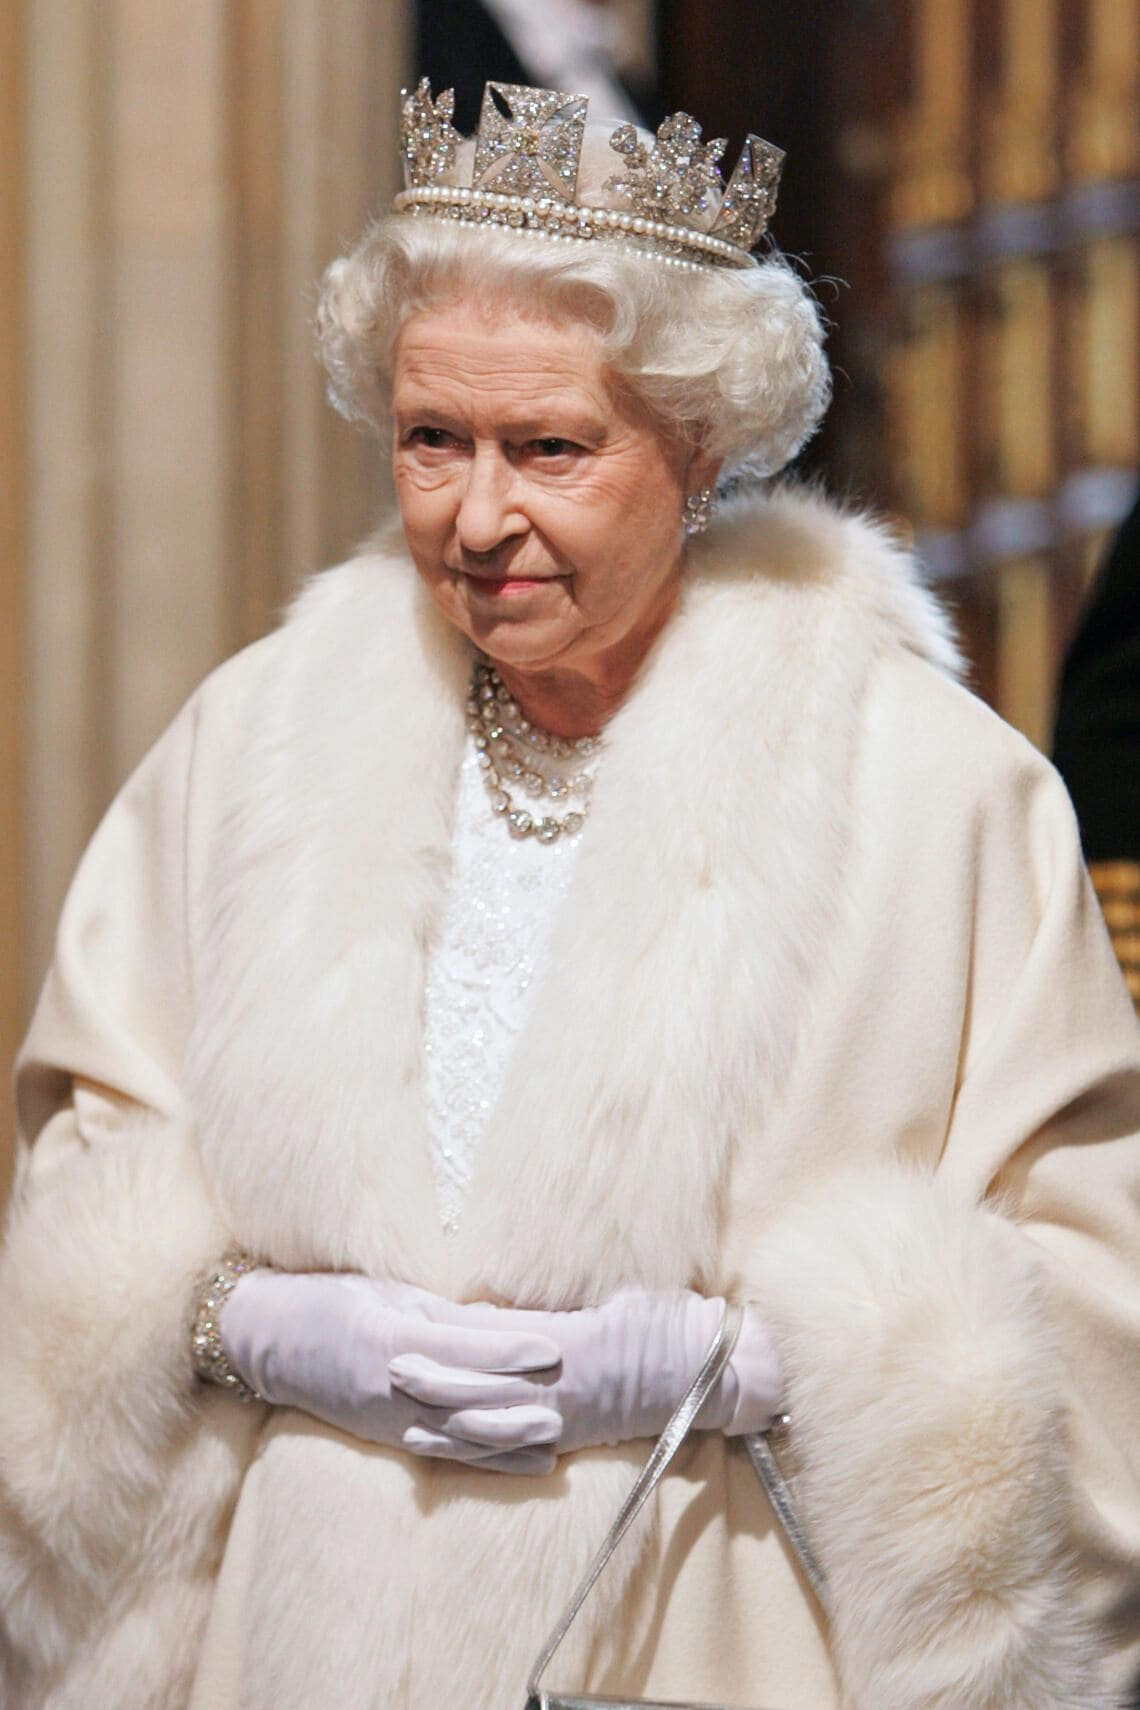 LONDON, ENGLAND - NOVEMBER 6: Queen Elizabeth II wears the Diamond Diadem made by Rundell, Bridge & Rundell (Rundells) as she arrives at the House of Lords for the State Opening of Parliament on November 6, 2007 in London, England. (Photo by Tim Graham Photo Library via Getty Images)